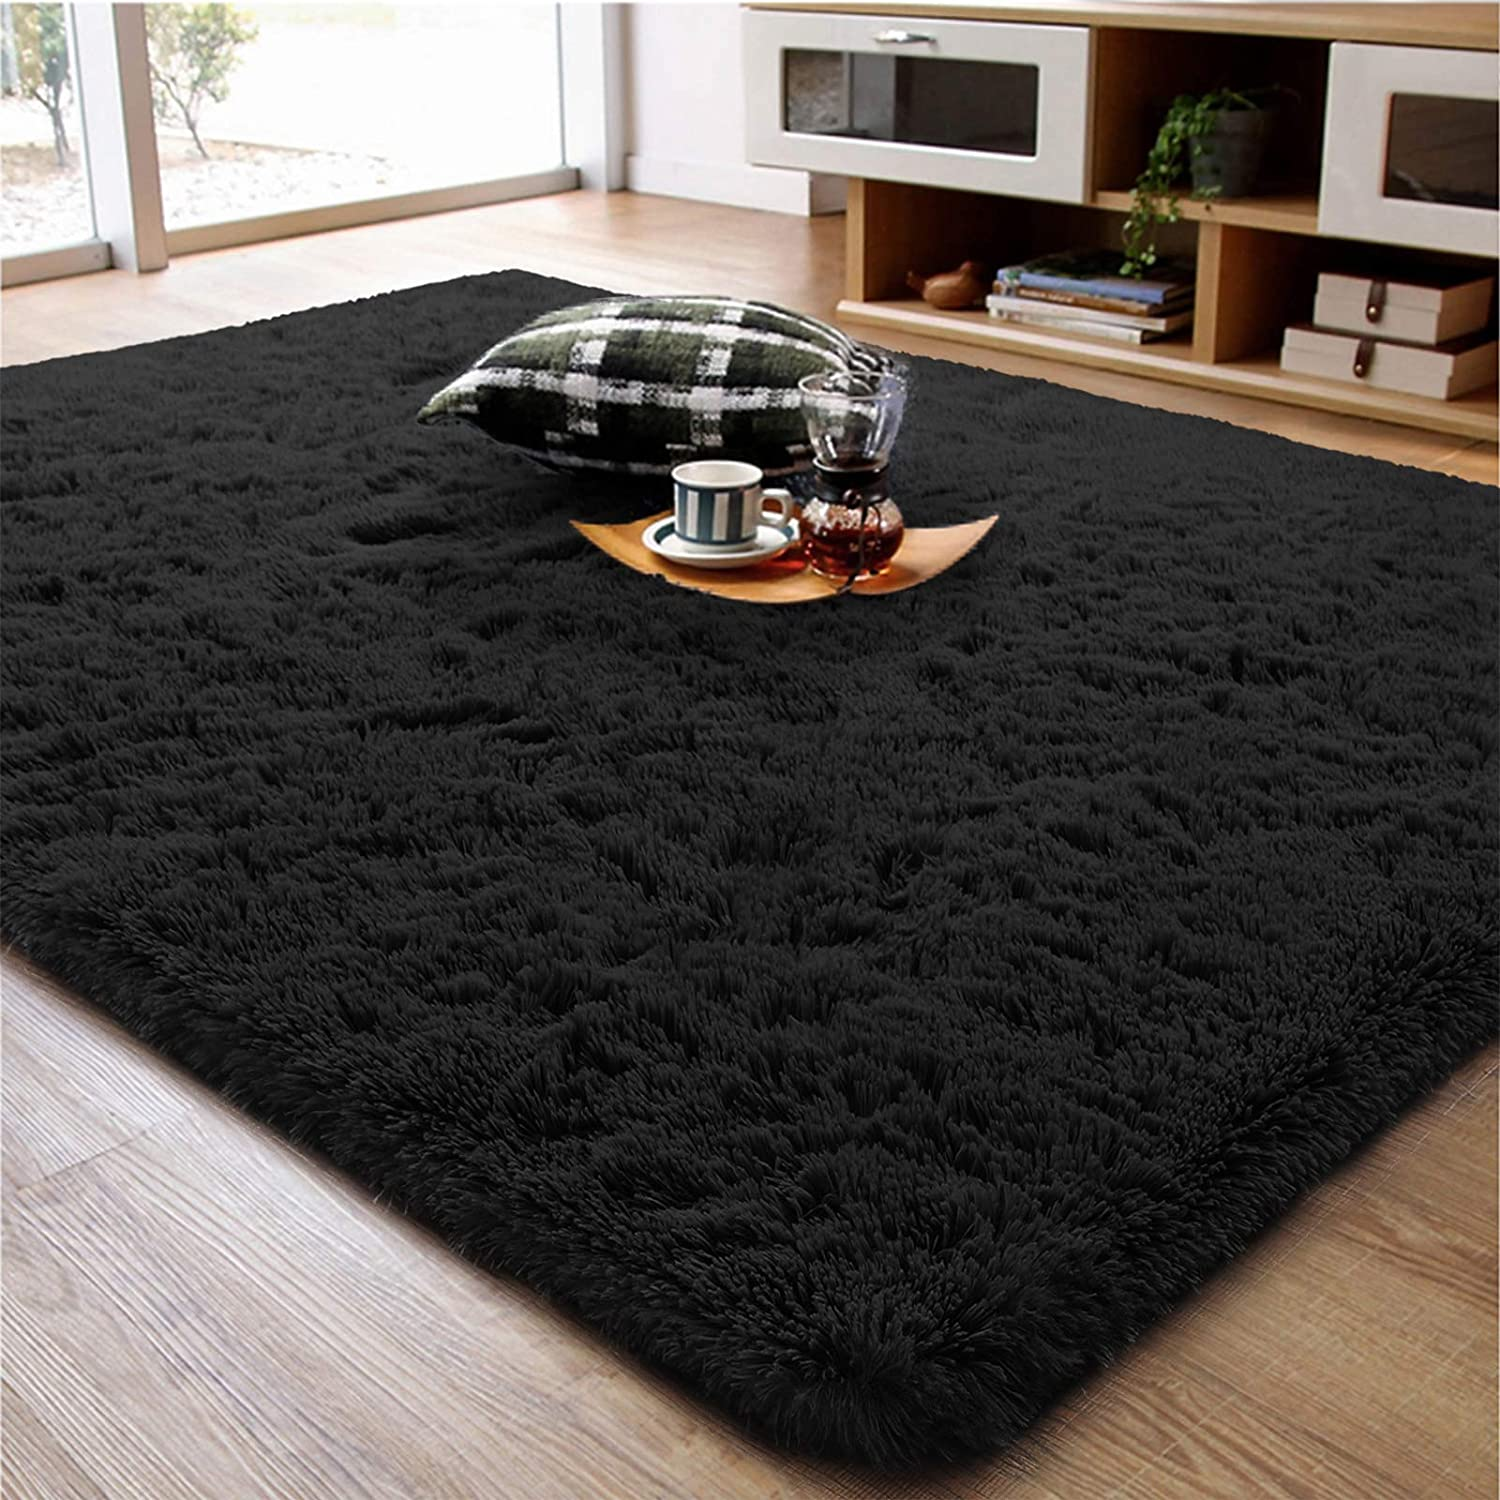 ompaa soft fluffy area rug for living room